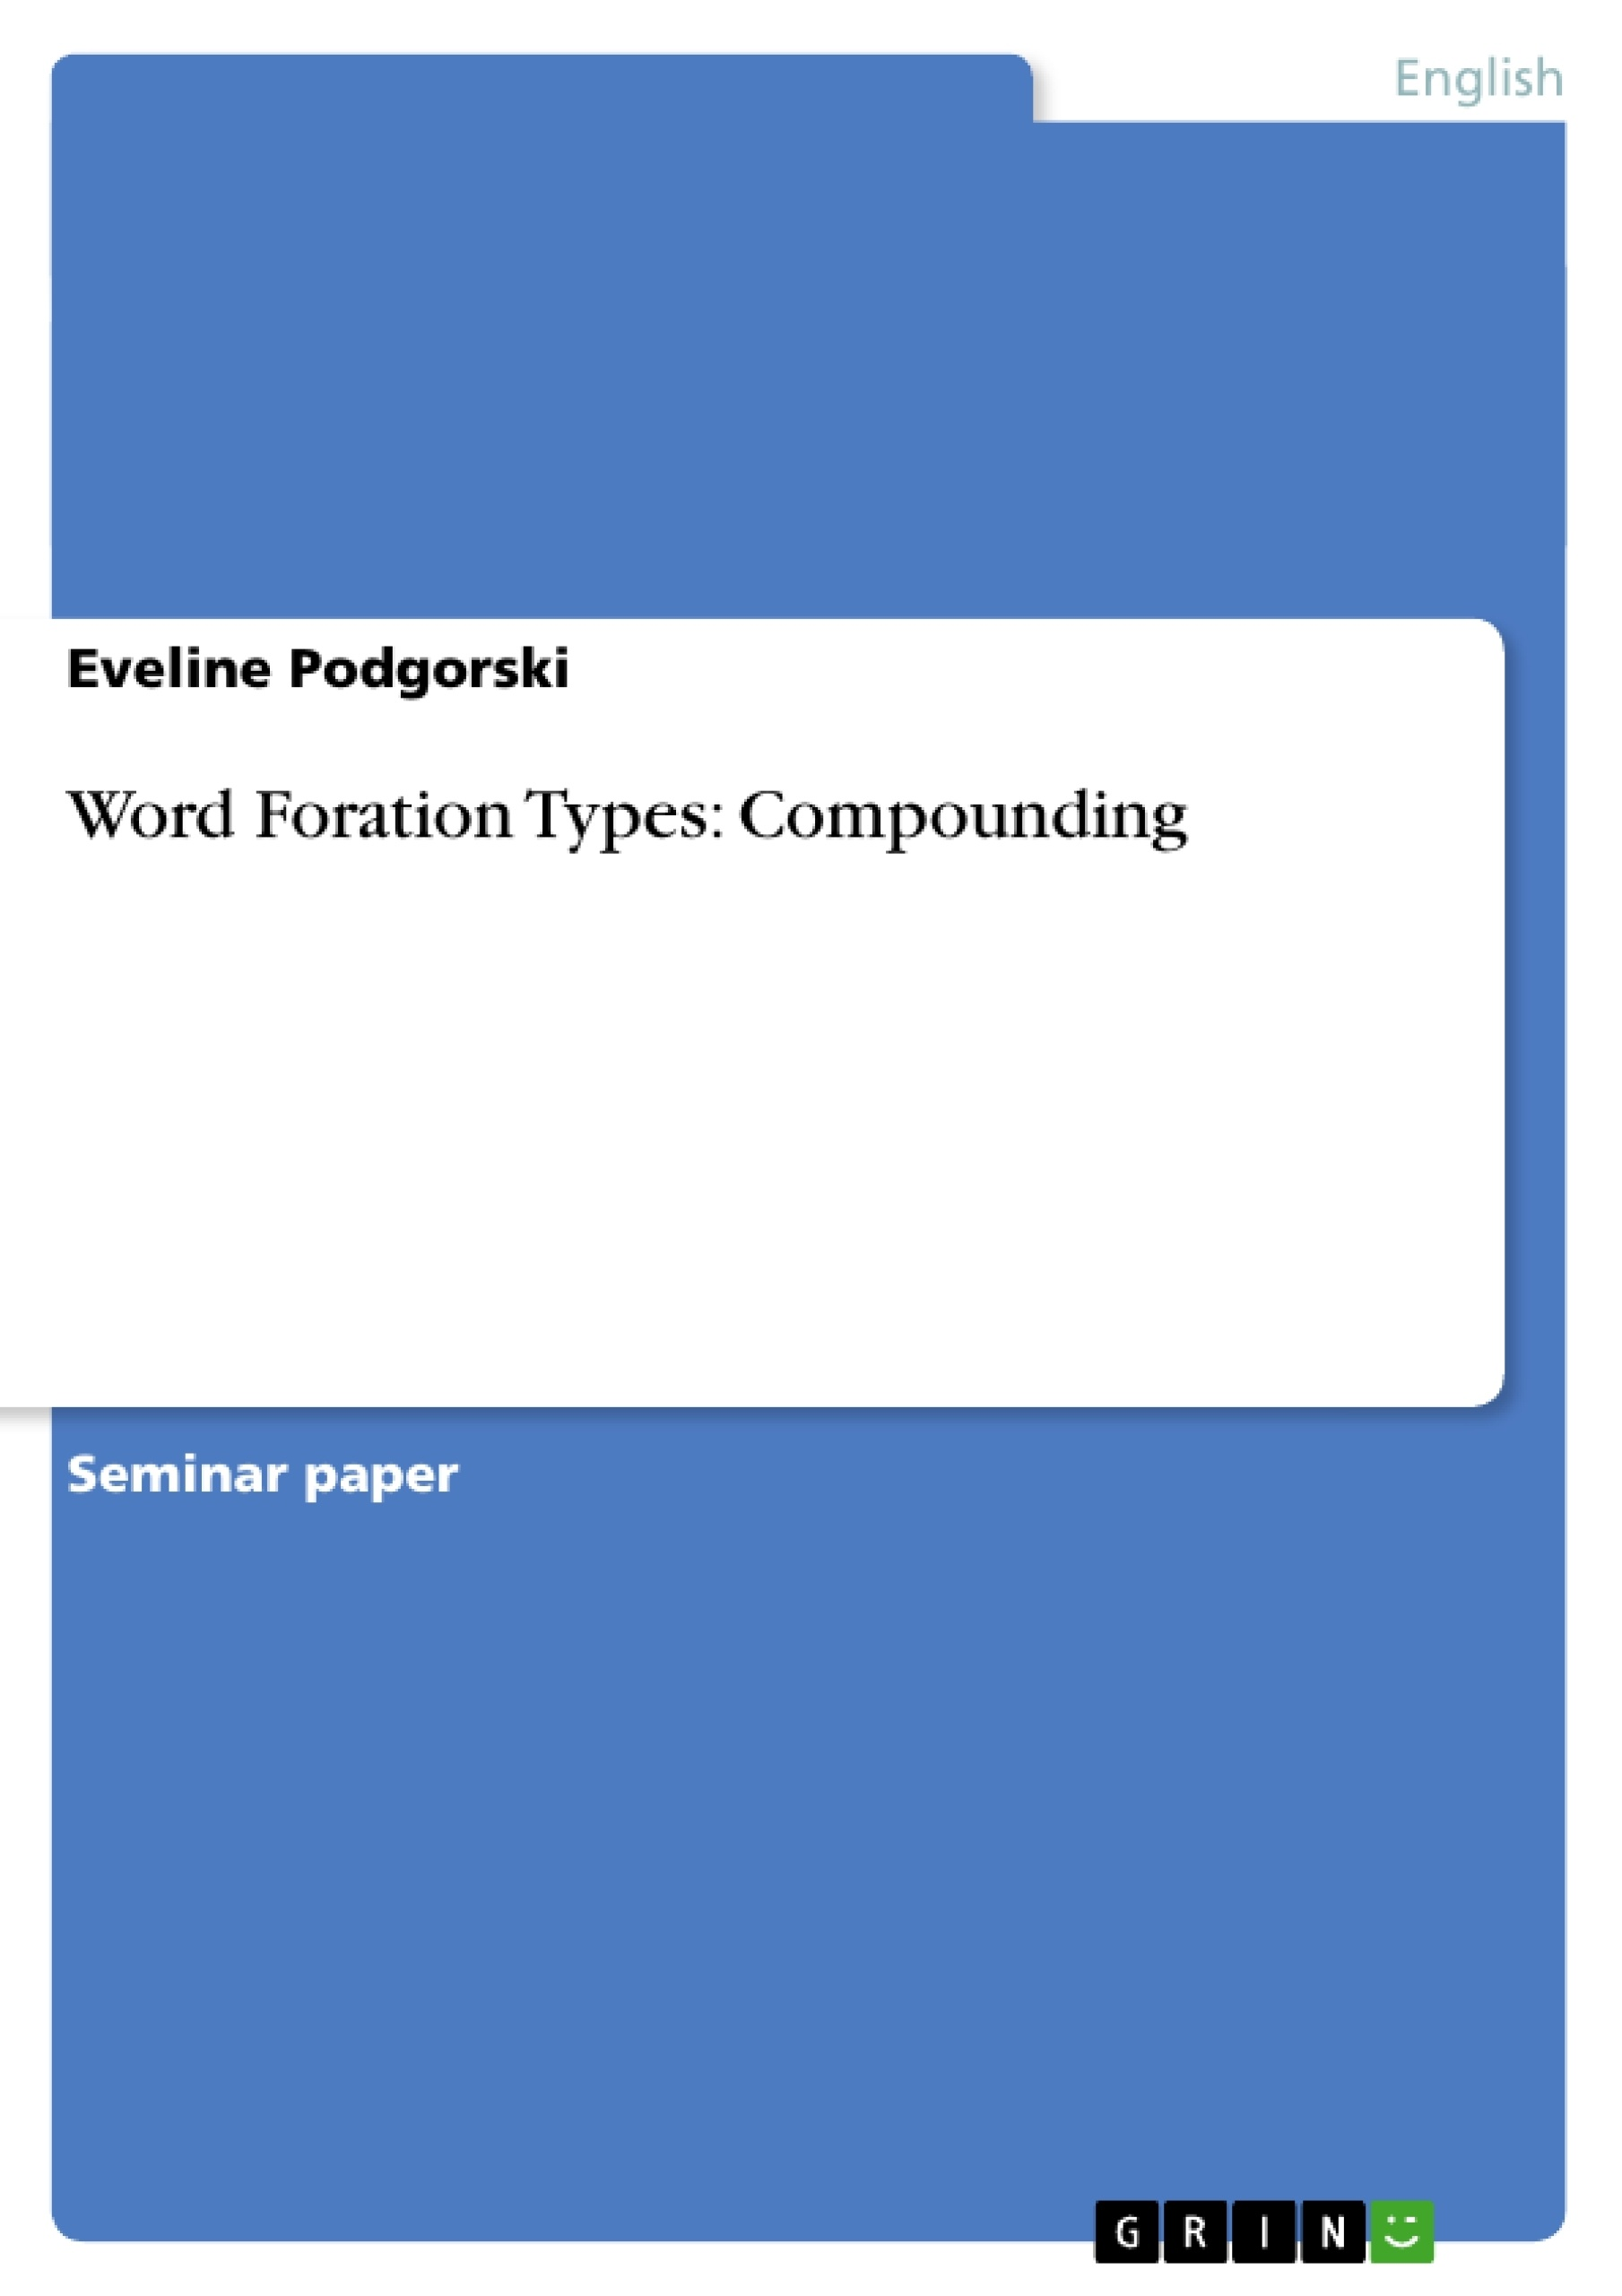 Title: Word Foration Types: Compounding